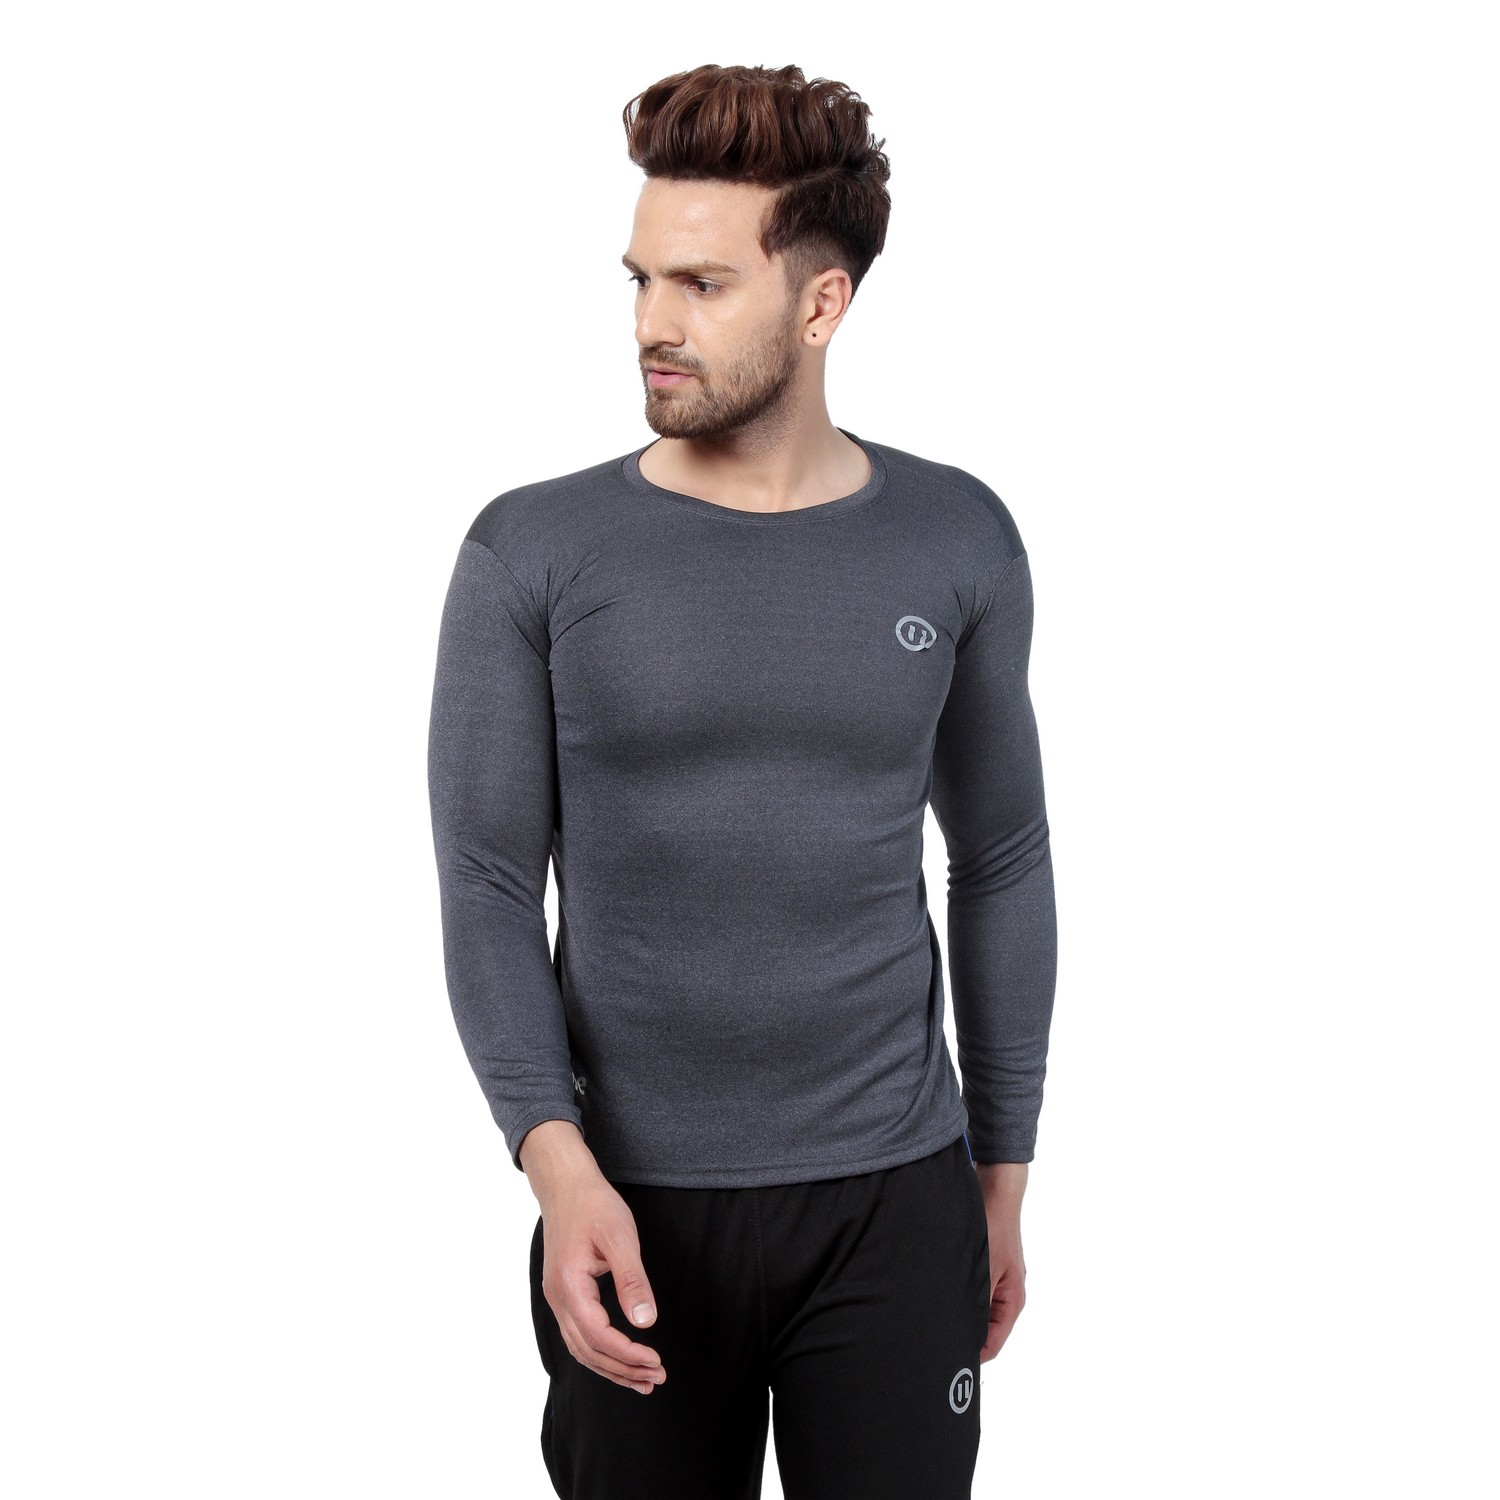 PAUSE Sport Grey Solid Sports Dry-Fit Round Neck Muscle Fit Full Sleeve T-Shirt